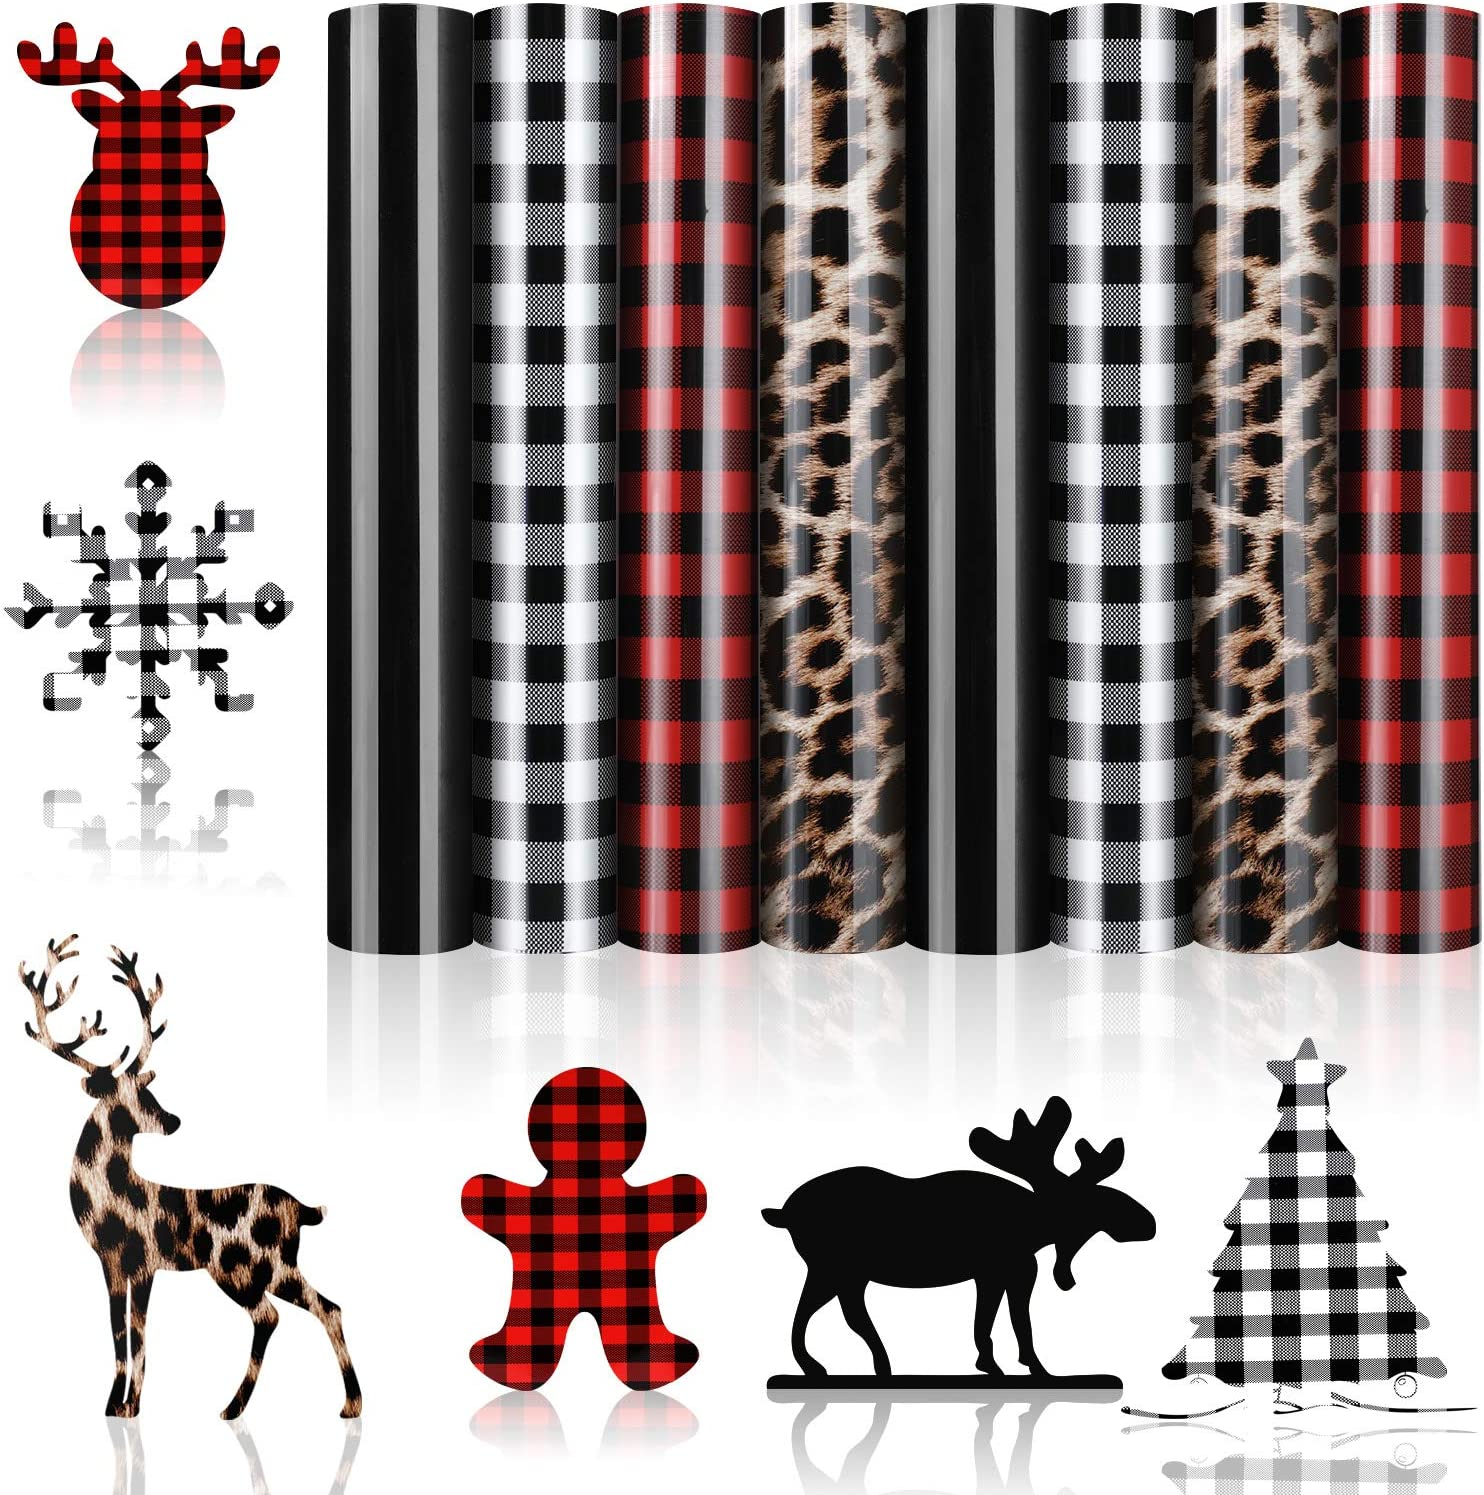 8 Sheets Christmas Buffalo Plaid Iron-on Vinyl HTV Assorted Leopard Pattern Check Heat Transfer Vinyl Heat Transfer Vinyl for T-Shirts Fabric Craft 12 x 10 Inch Red, White-Black, Black, Leopard